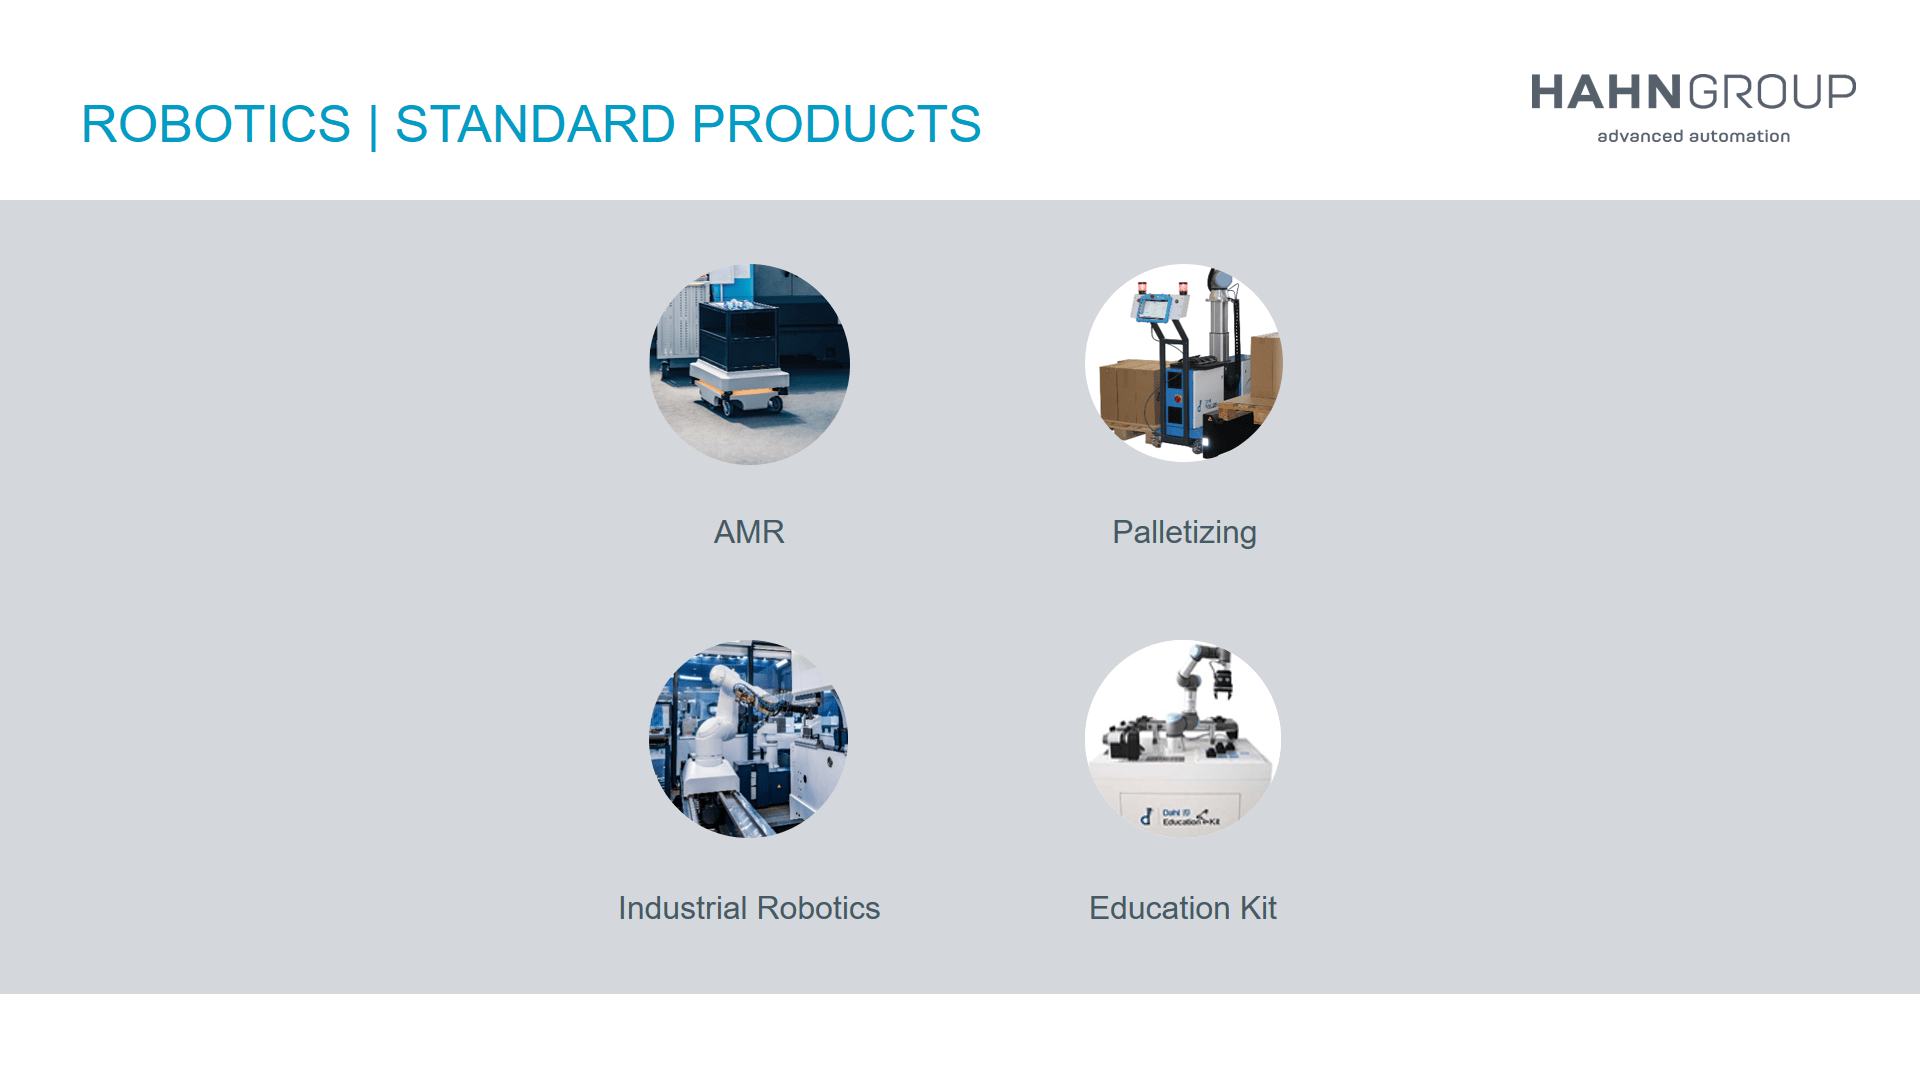 Standard Products of HAHN Group Robotics